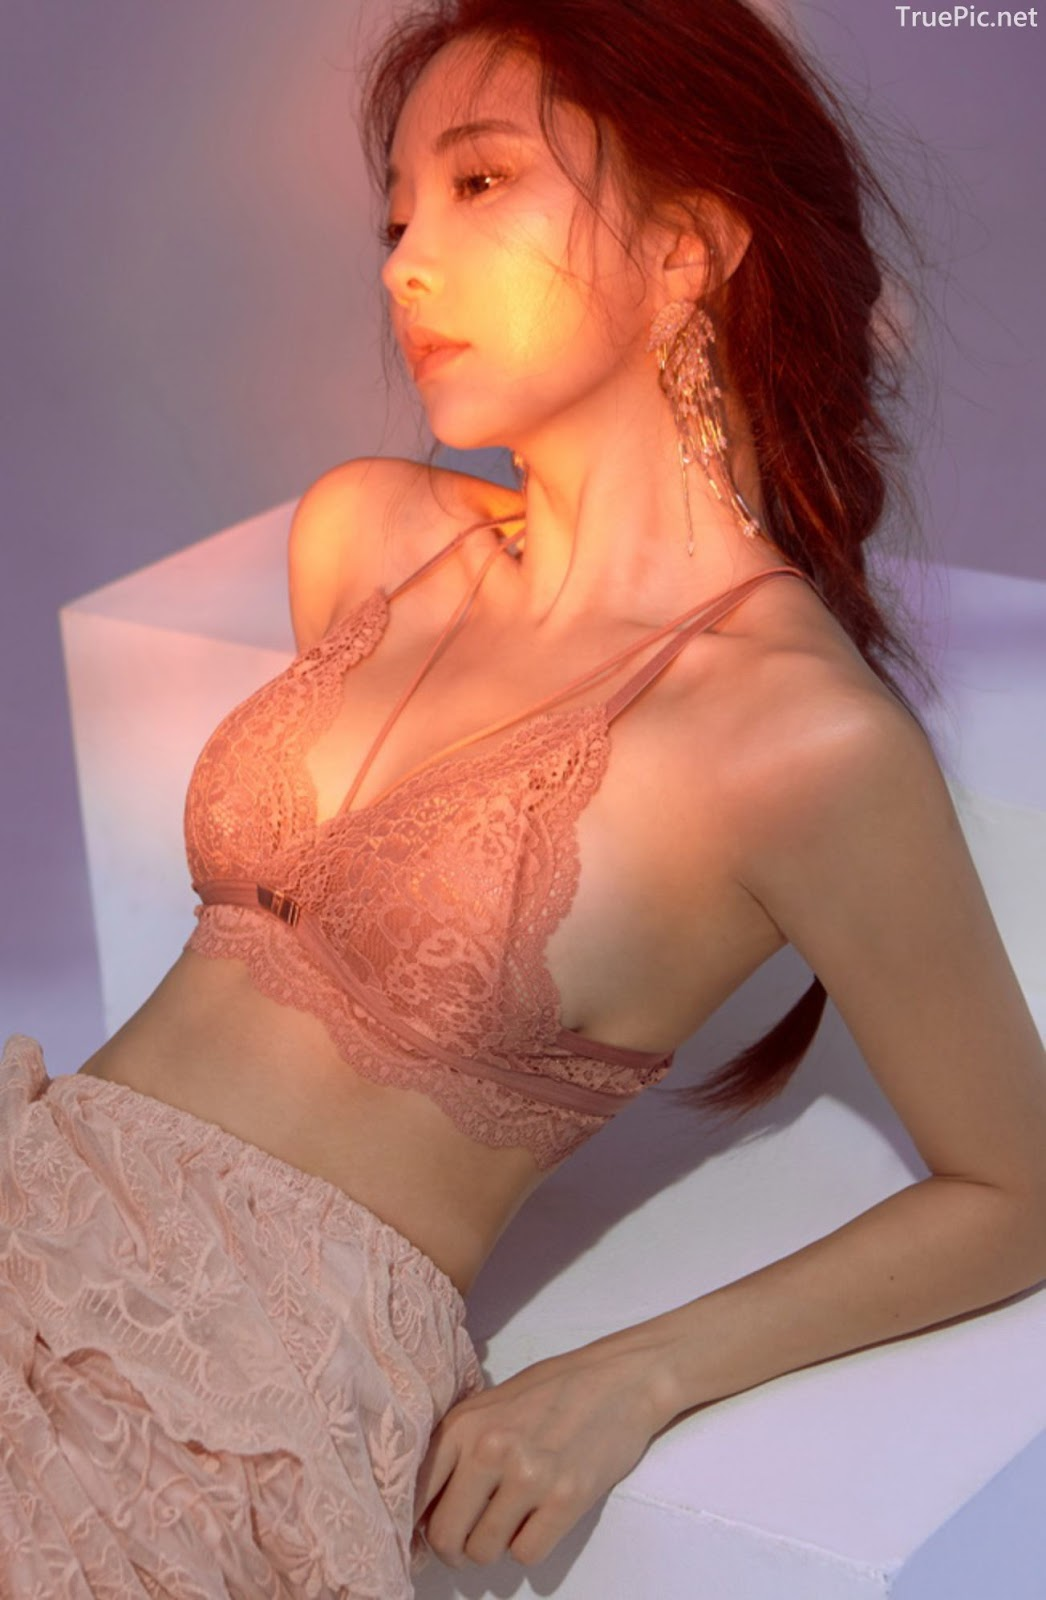 Korean model and fashion - Park Soo Yeon - Off-White Lavender and Salmon Pink Bra - Picture 3